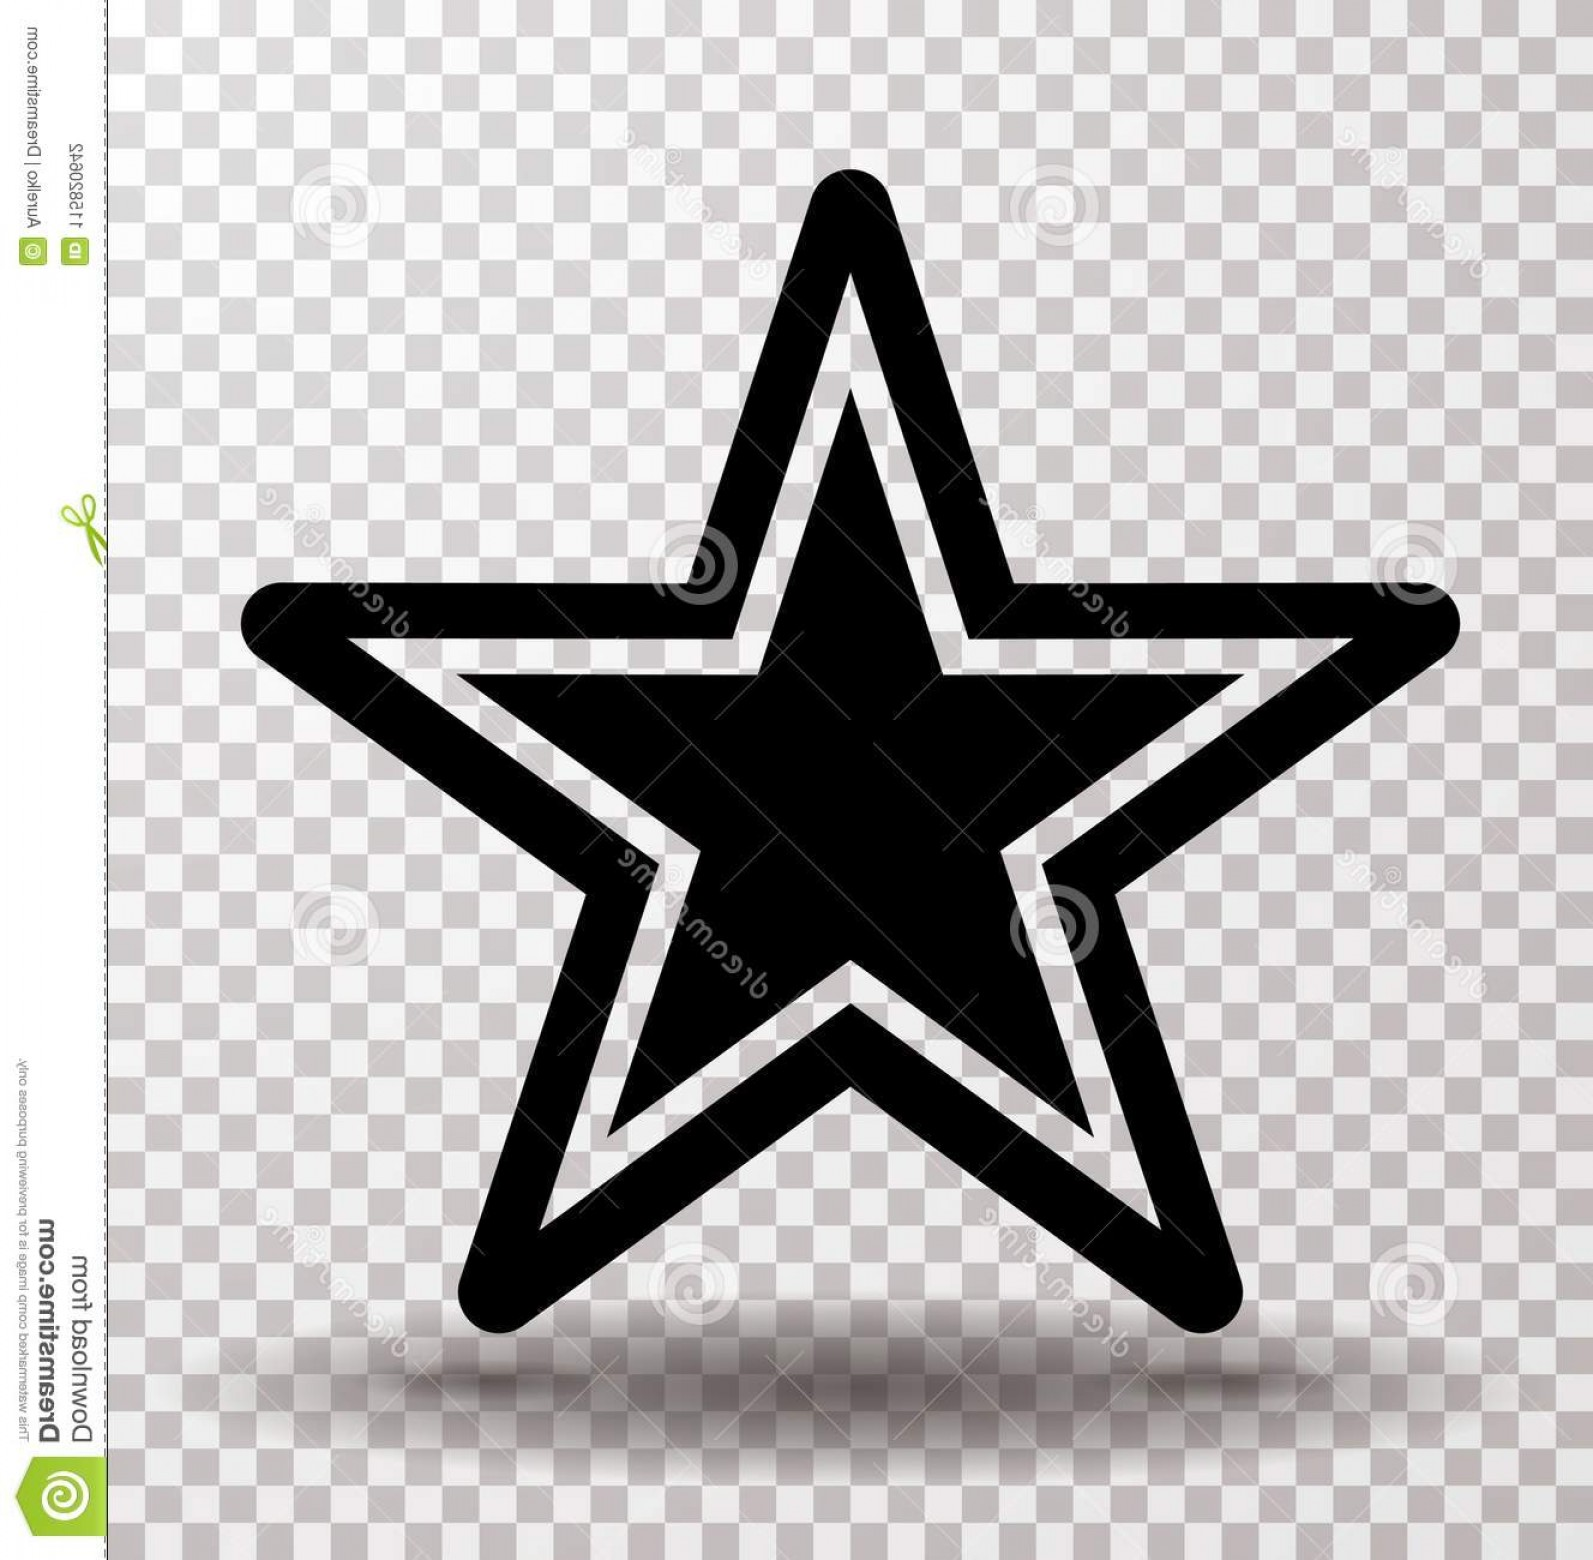 Free Vector Star: Star Stroke Icon Vector Eps Jpg Flat Web Art Pic Ai Illustration Stock Image